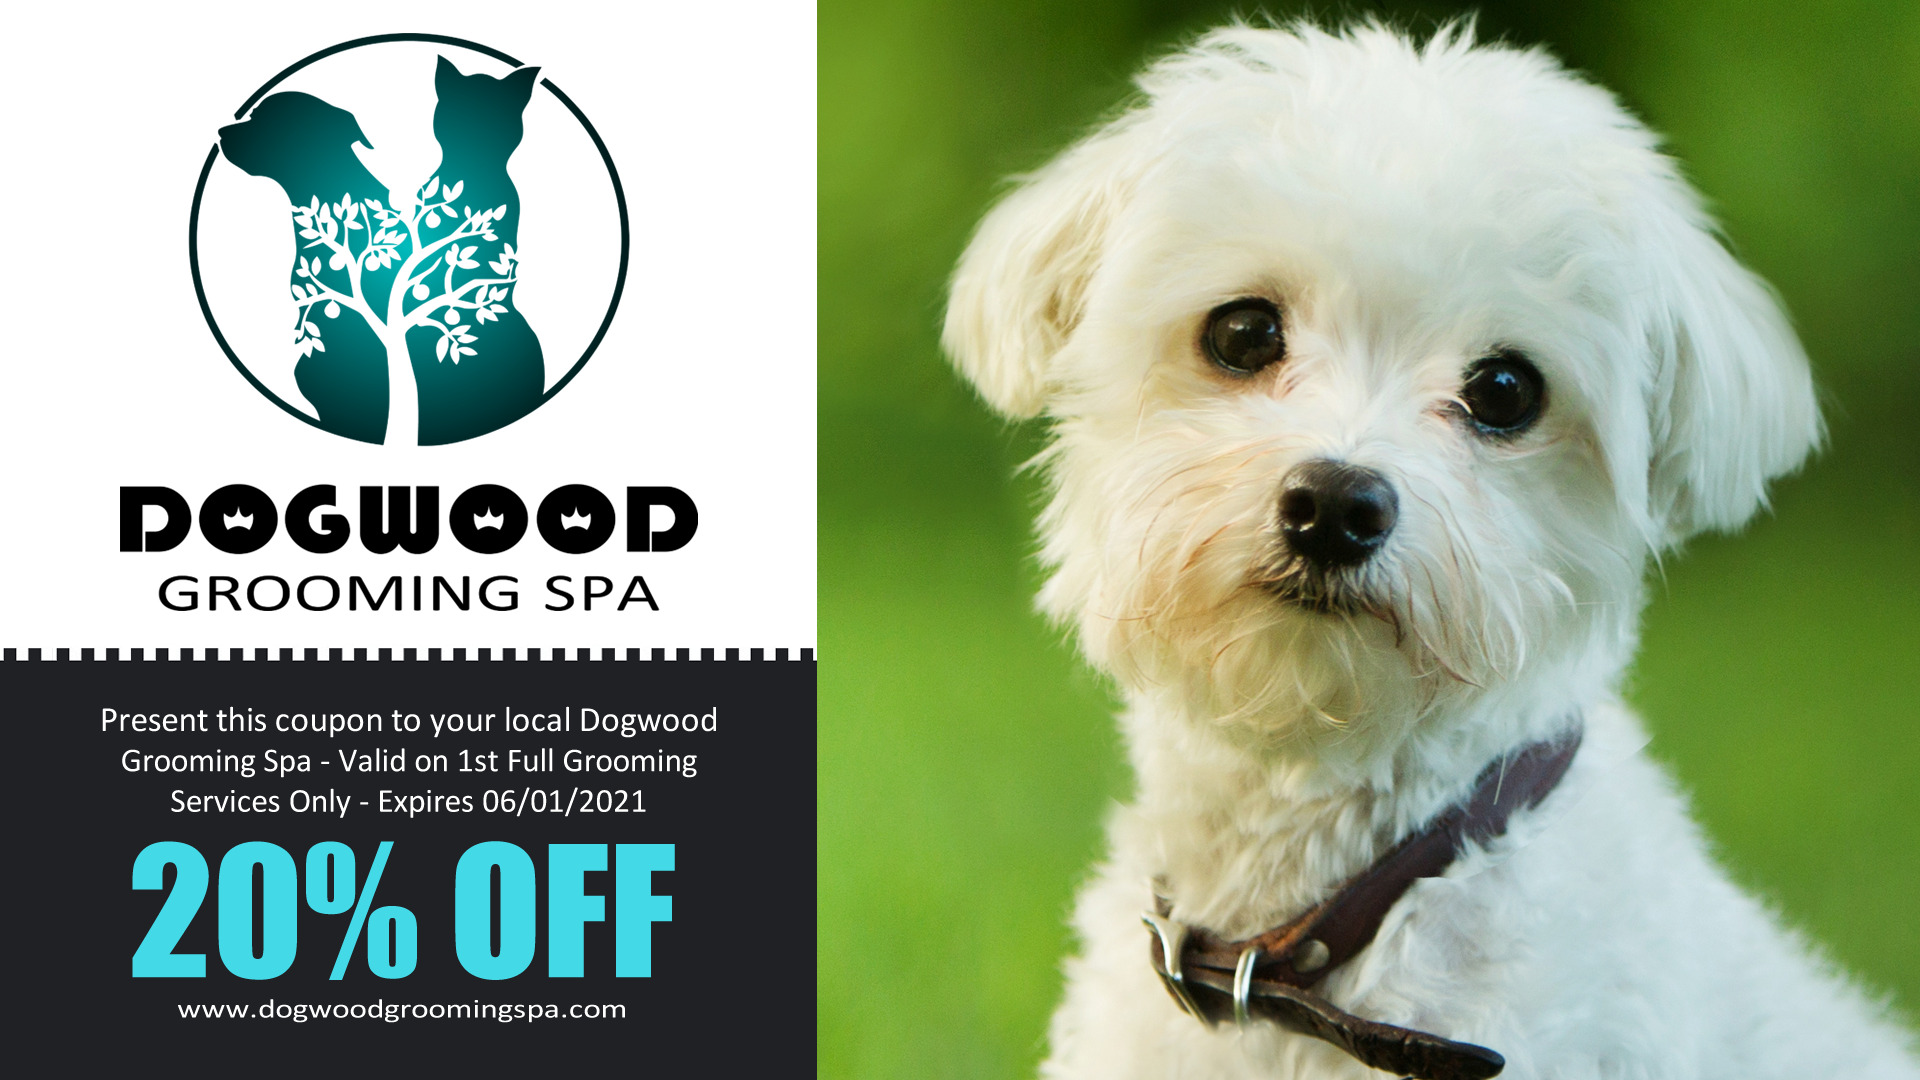 Dogwood Grooming Spa LLC on Visibility Kings | Professional Pet Groomer in Knoxville Tn | Offering Full Dog Grooming, Creative Pet Coloring, and Pet Boarding